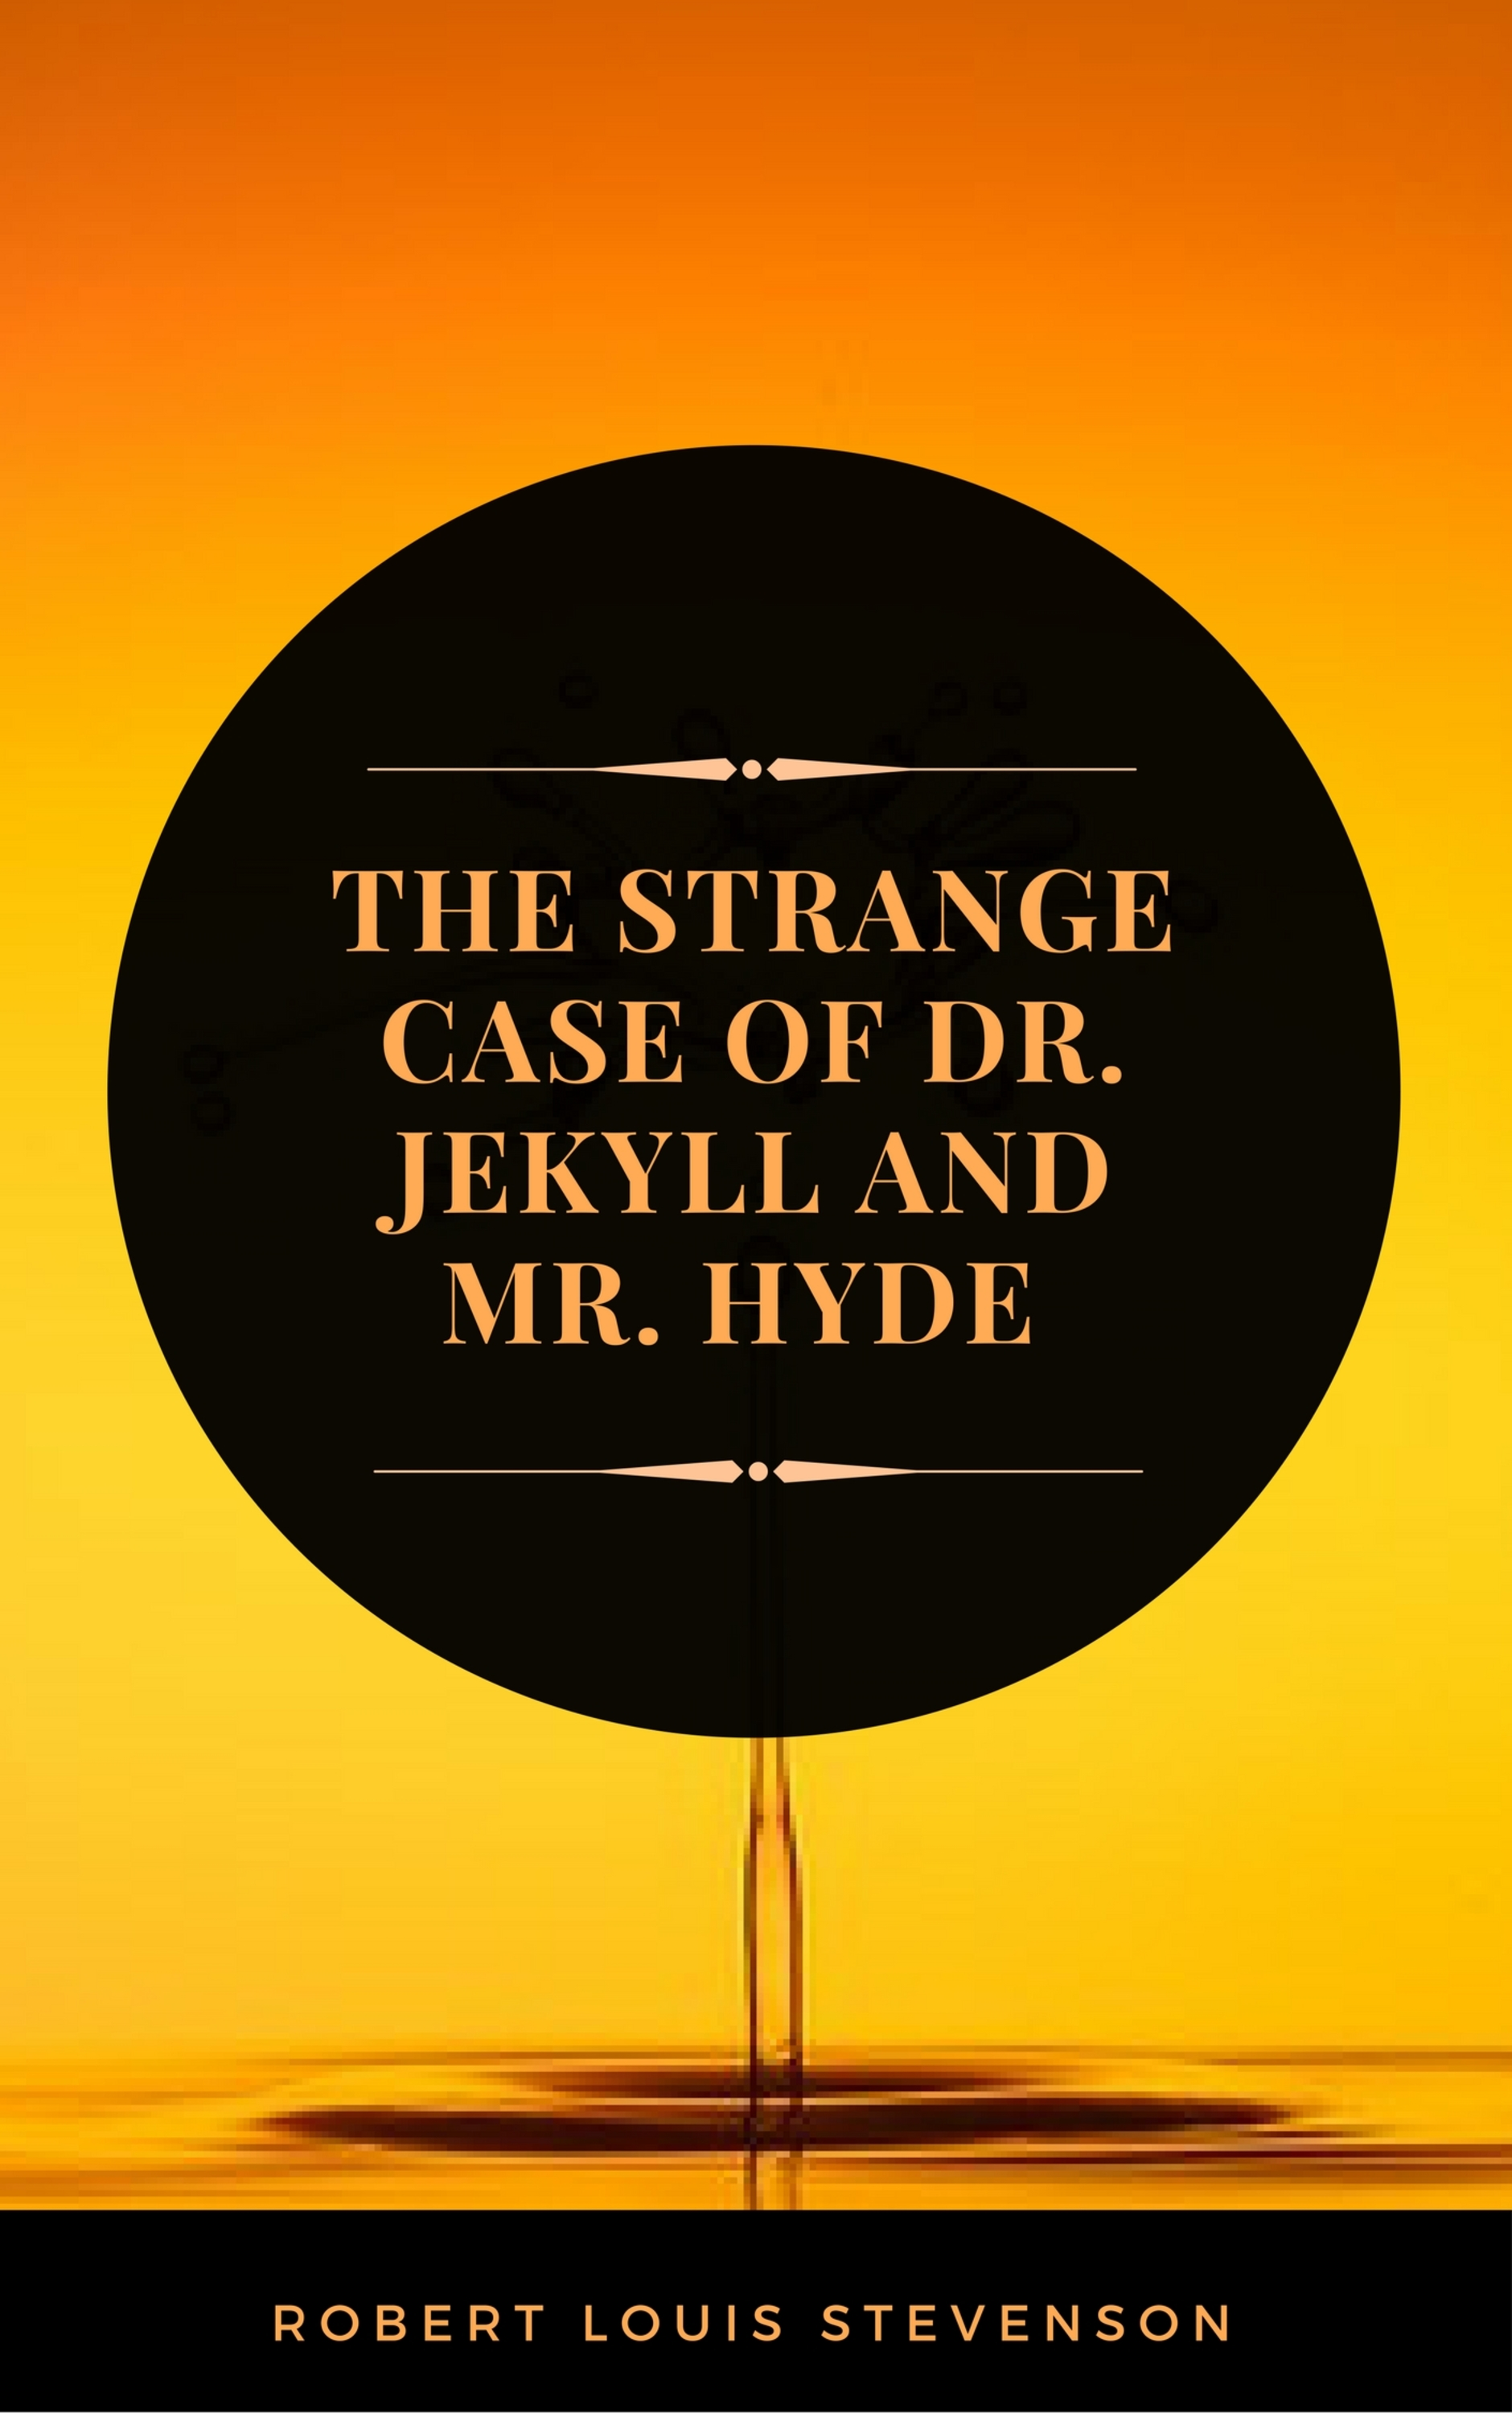 цена Robert Louis Stevenson The Strange Case of Dr. Jekyll and Mr. Hyde (ArcadianPress Edition) онлайн в 2017 году